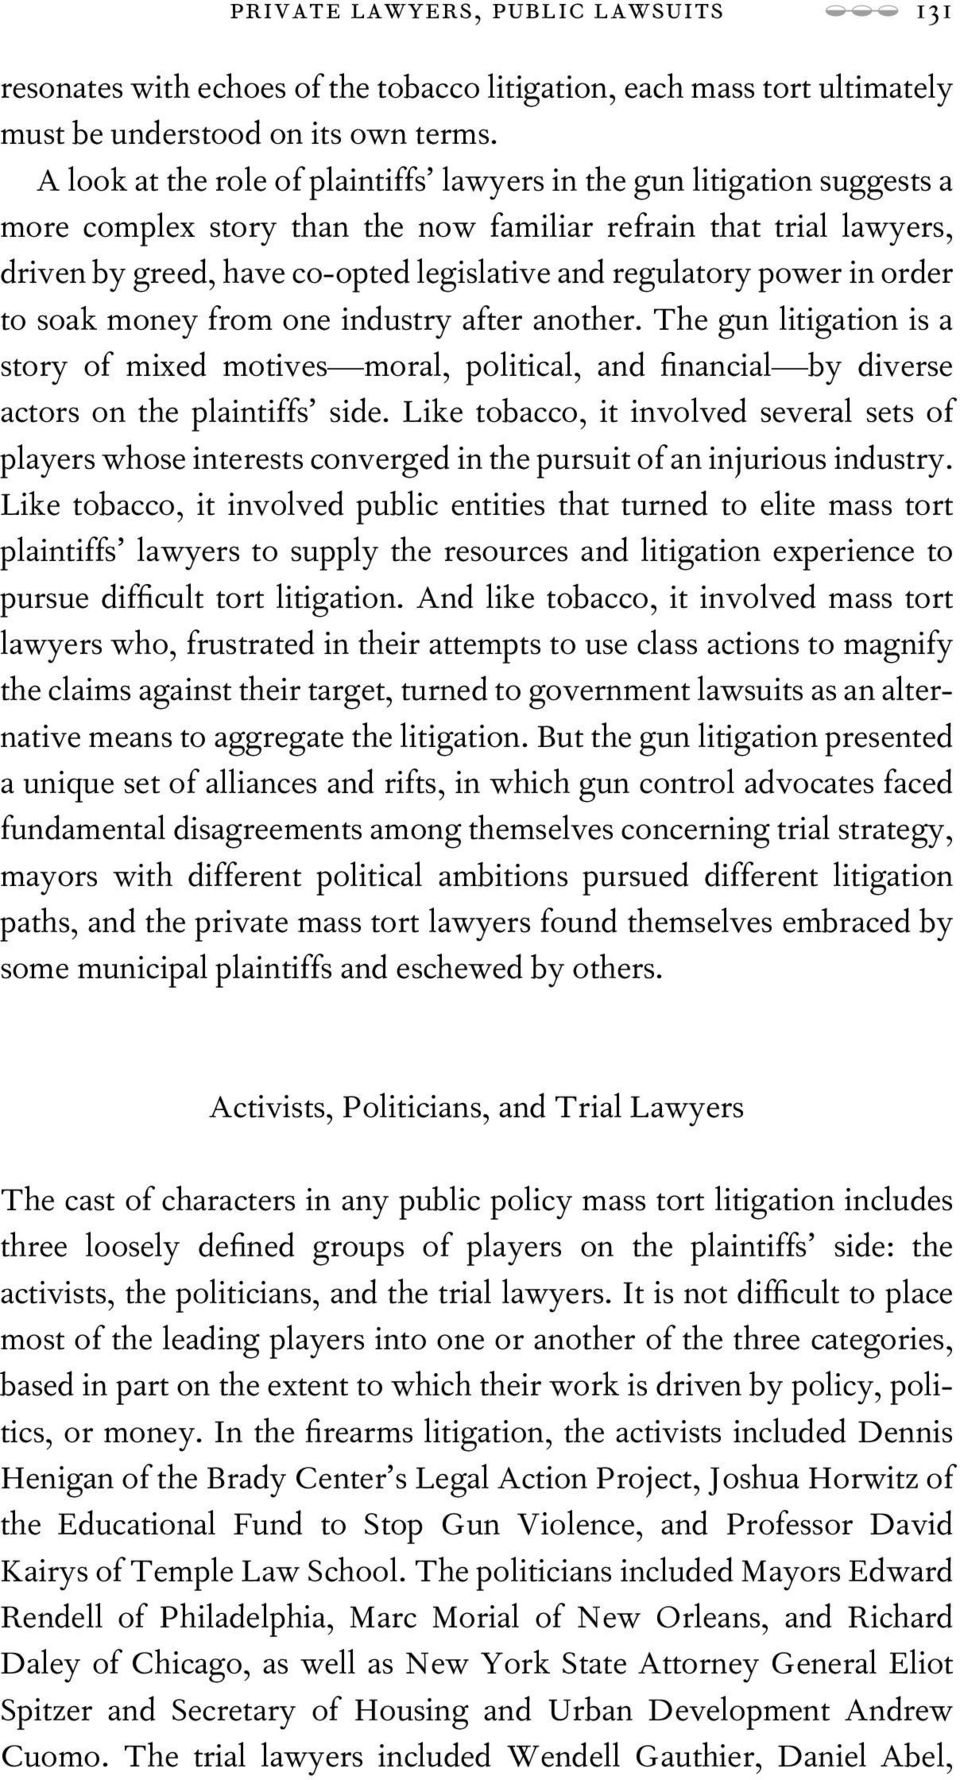 regulatory power in order to soak money from one industry after another. The gun litigation is a story of mixed motives moral, political, and nancial by diverse actors on the plaintiffs side.